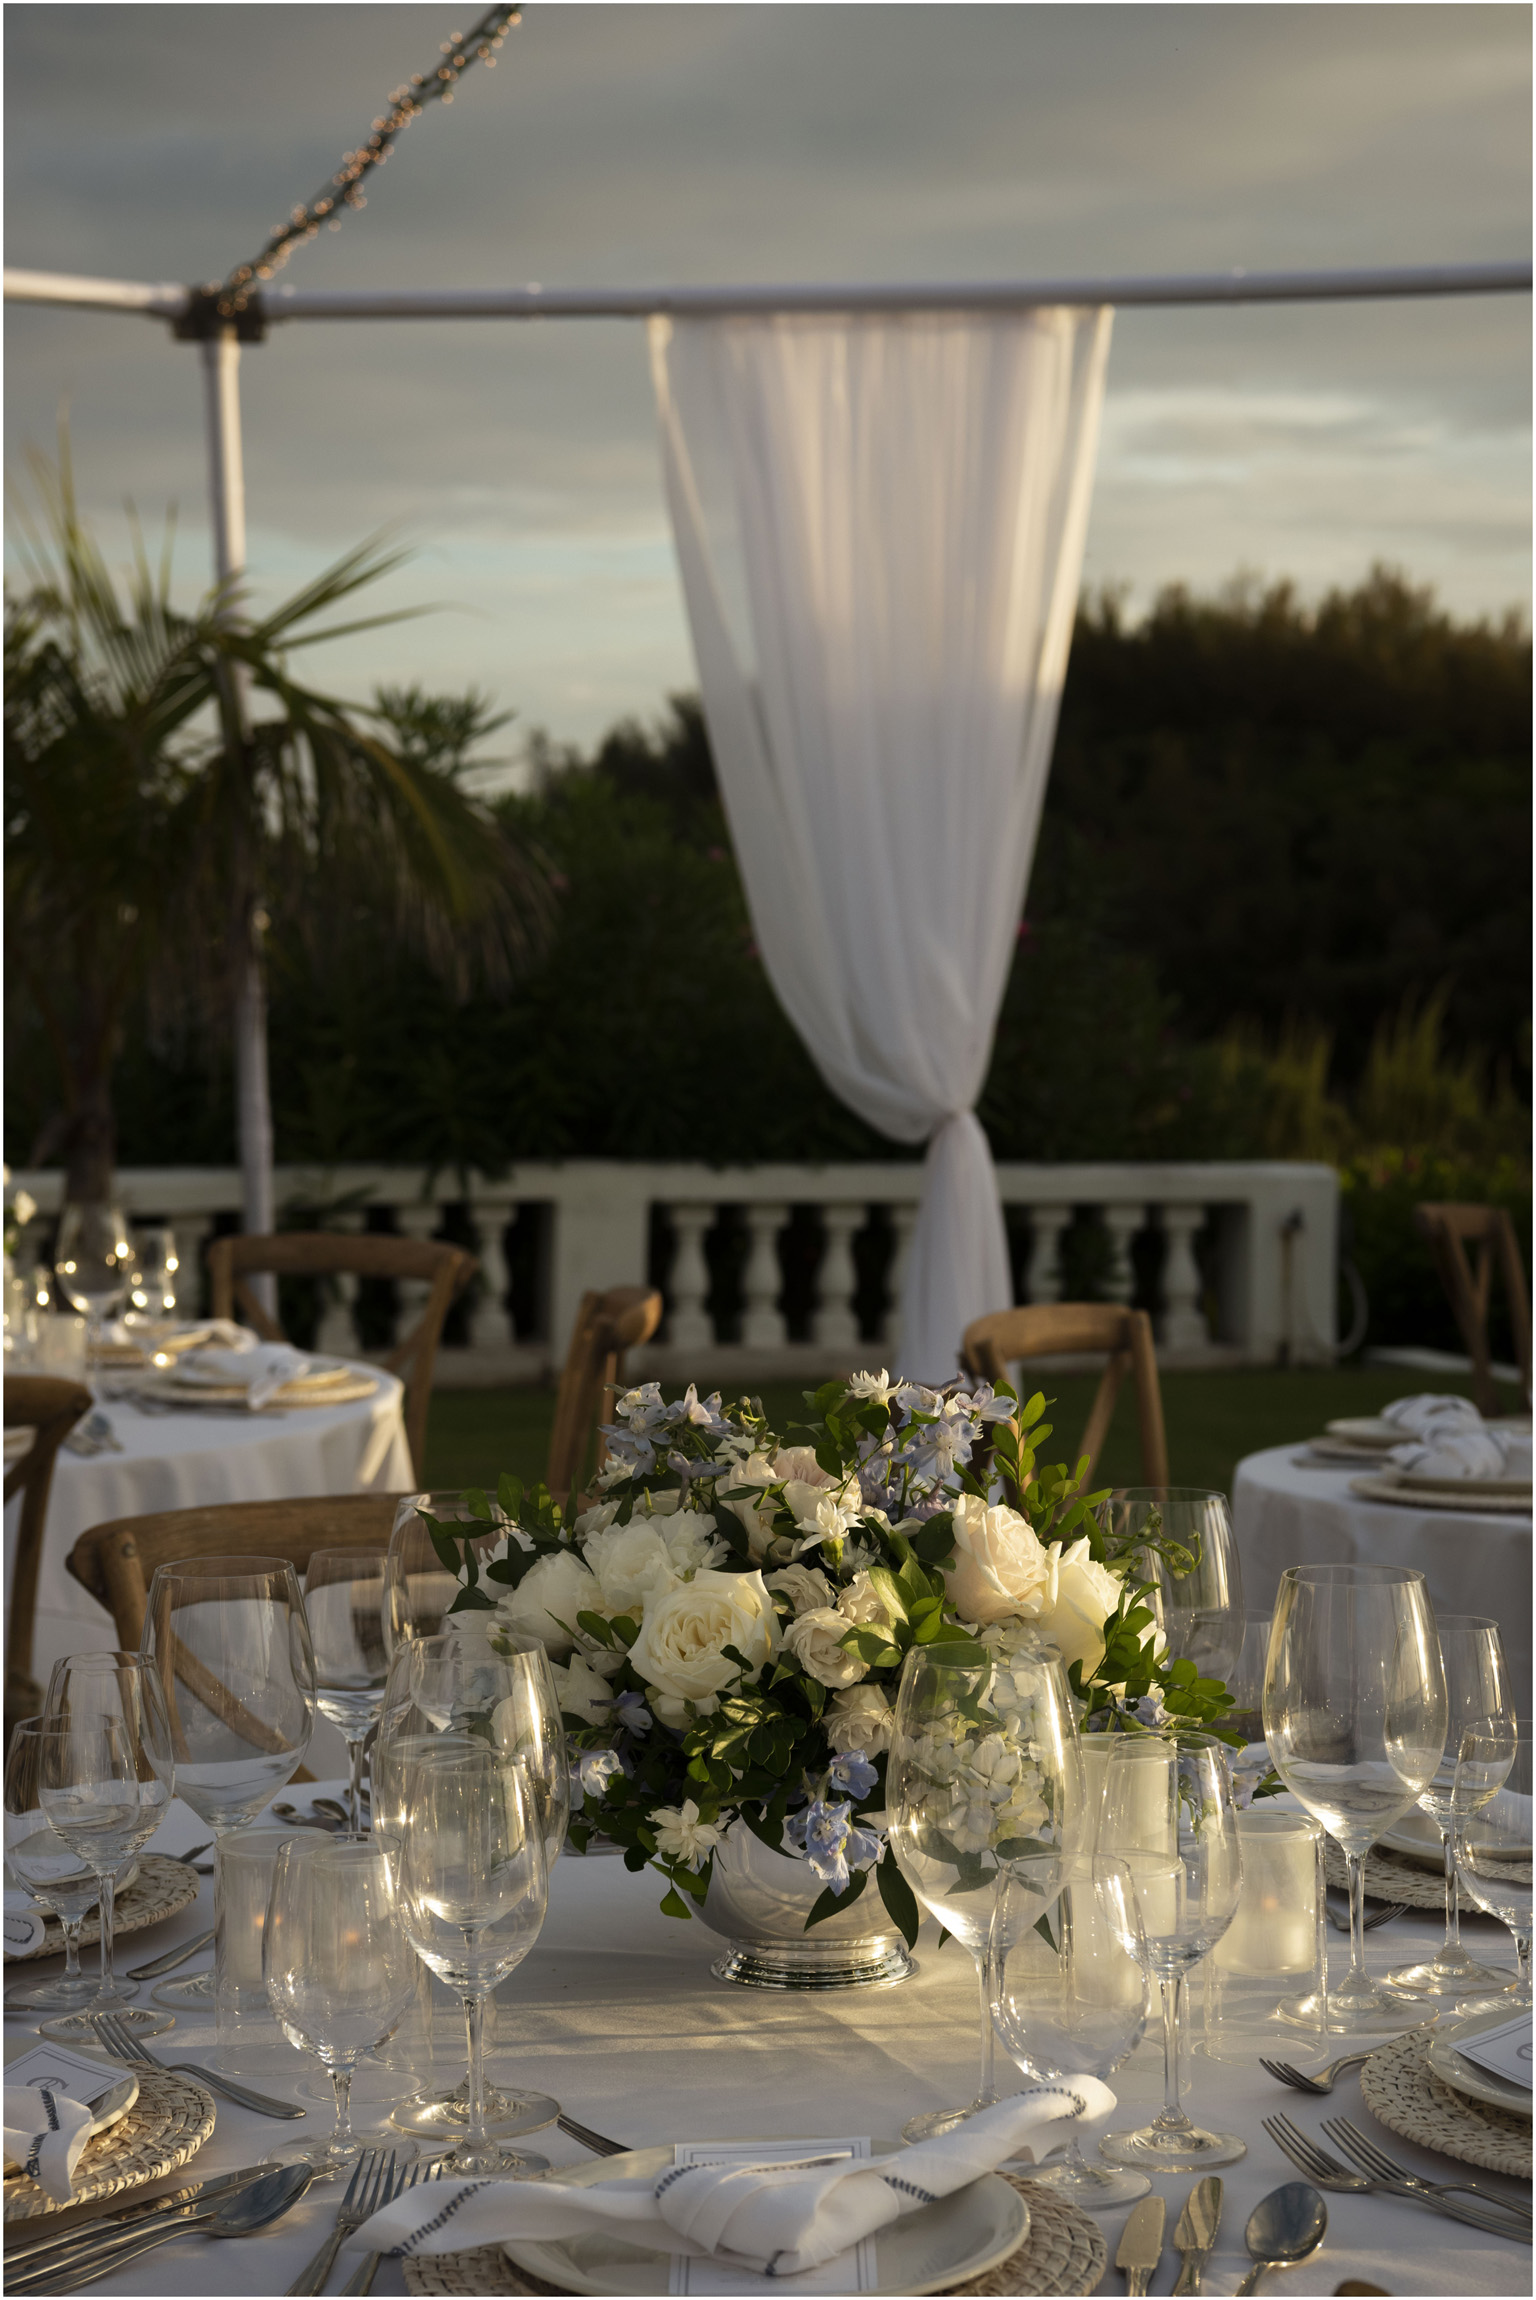 ©FianderFoto_Bermuda_Wedding_Photographer_Long_Island_Bermuda_Nancy_Ray_092.jpg